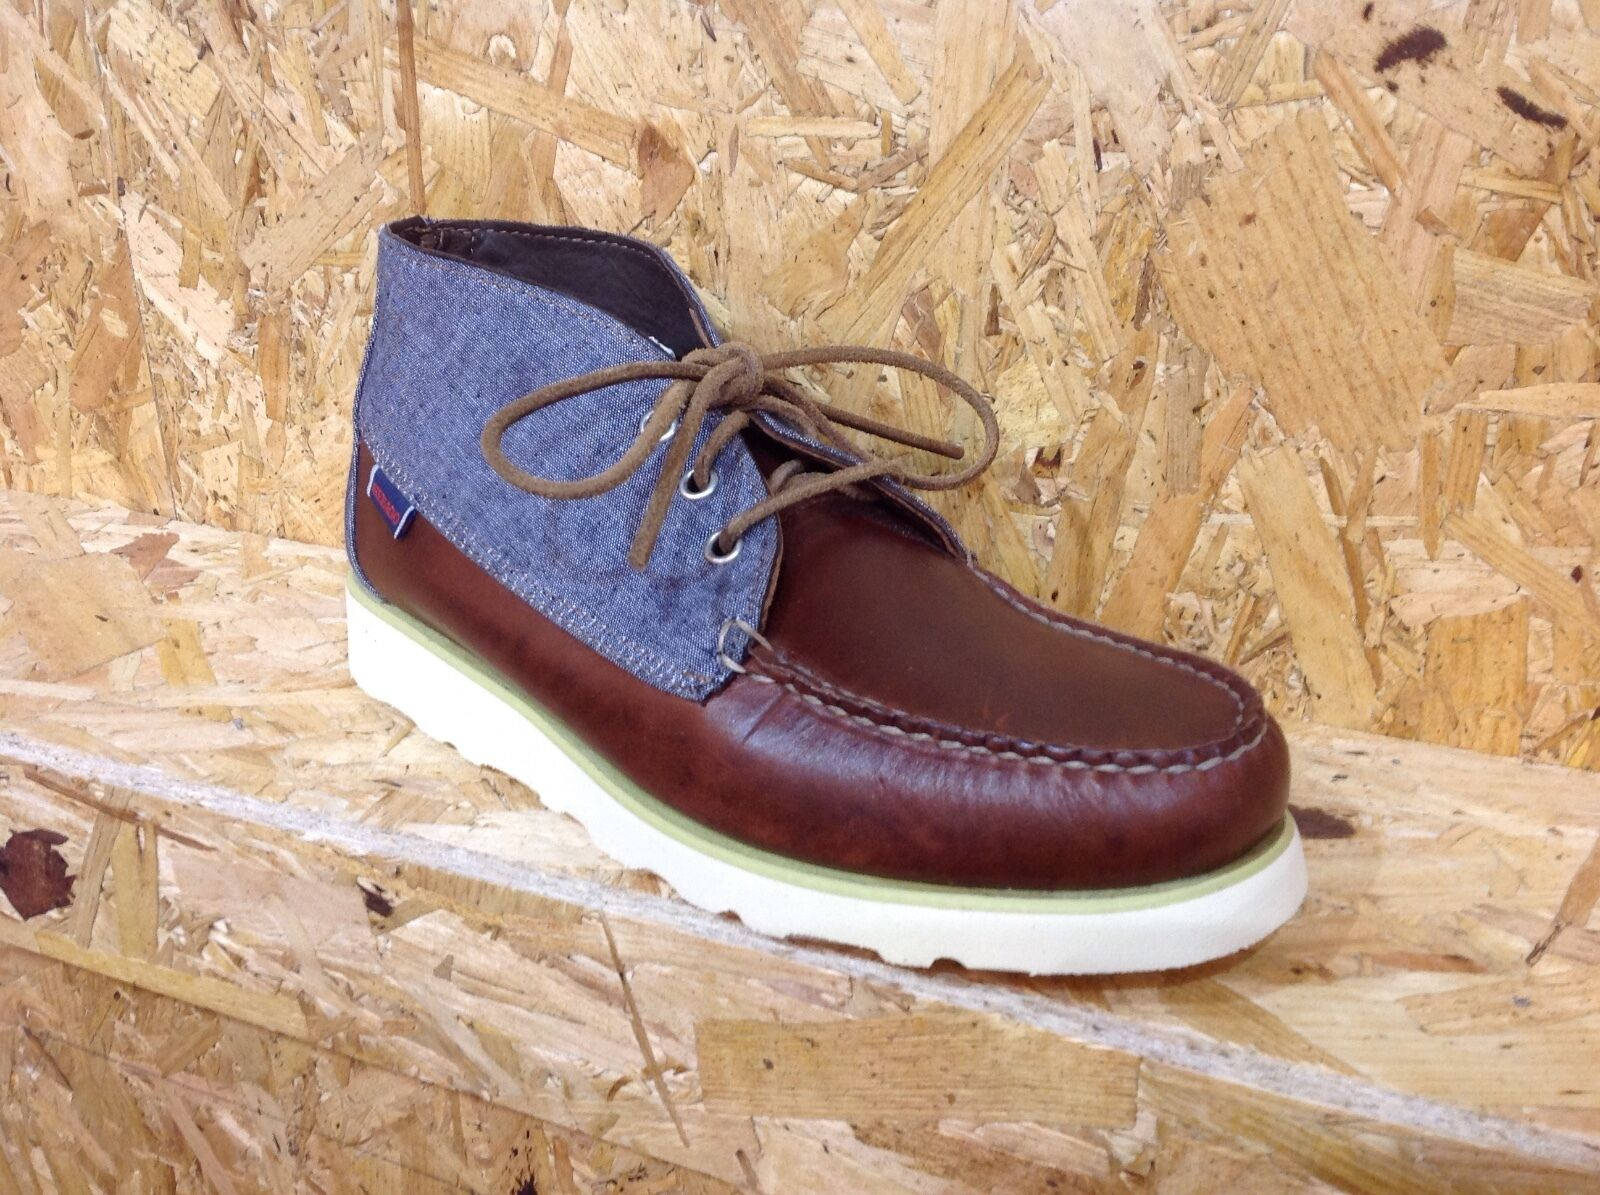 New Sebago Beacon Brown Deck Shoes